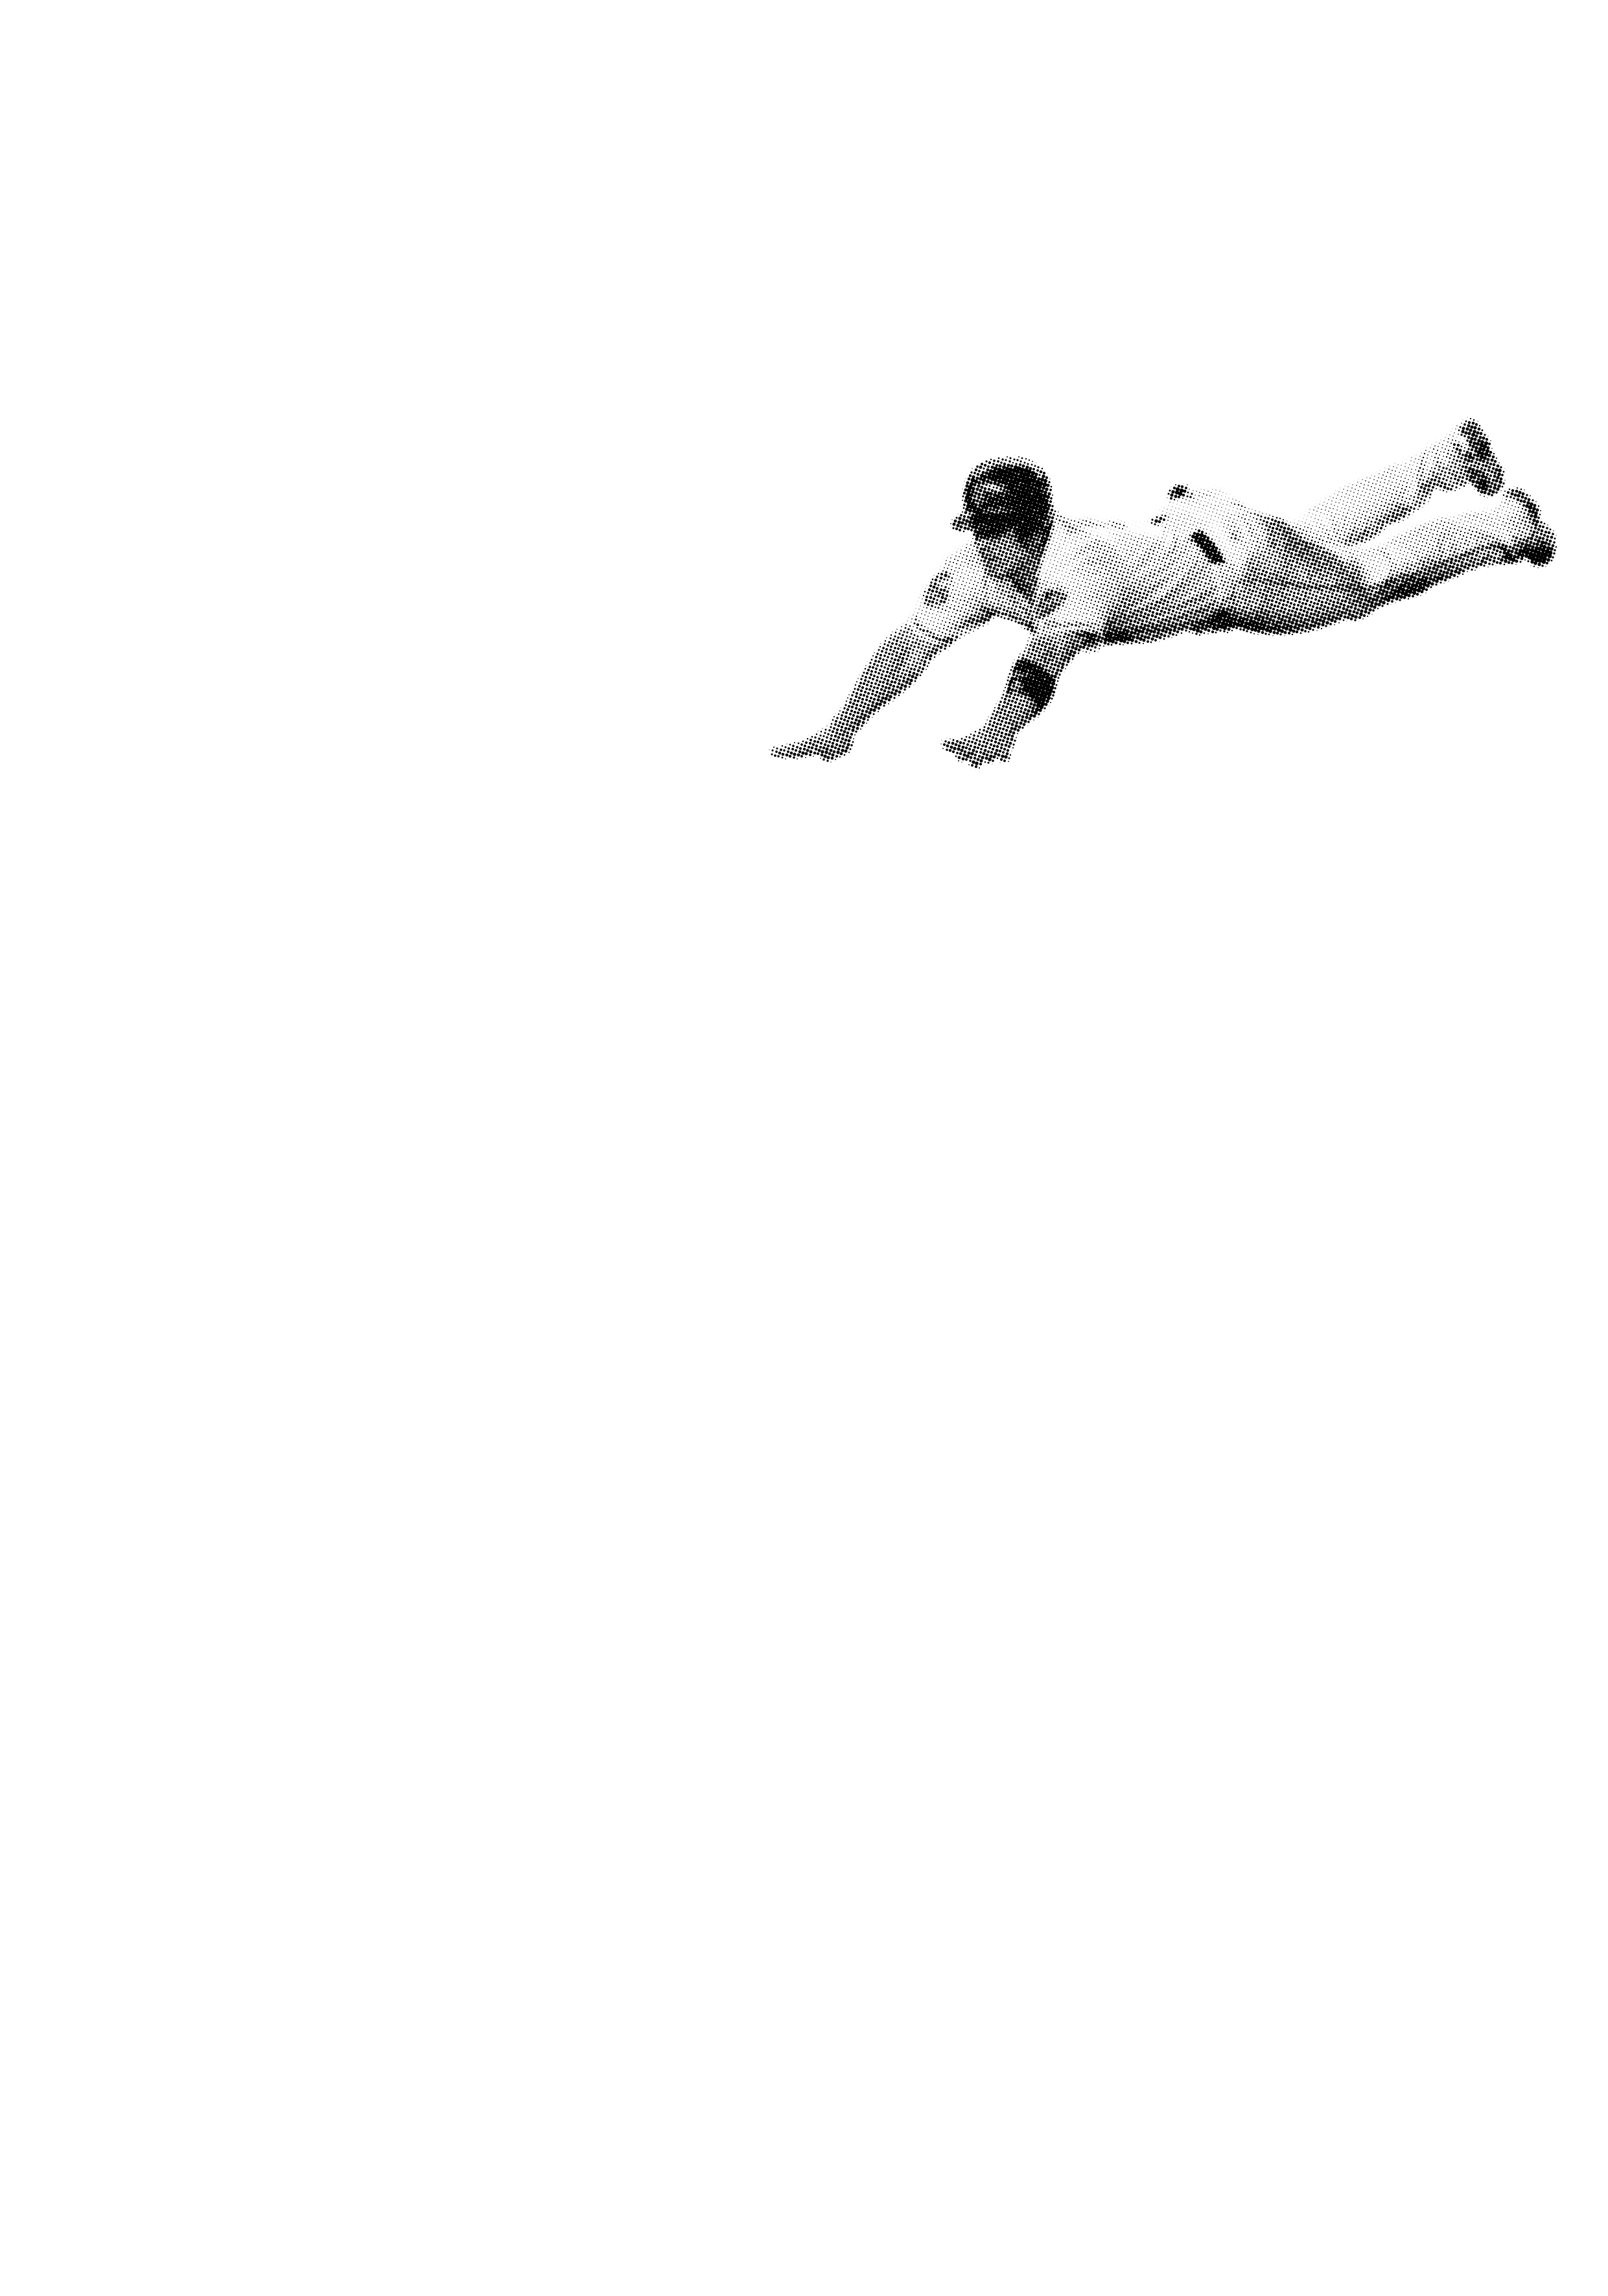 Liber-May__sliding-into-home__2009__04.png